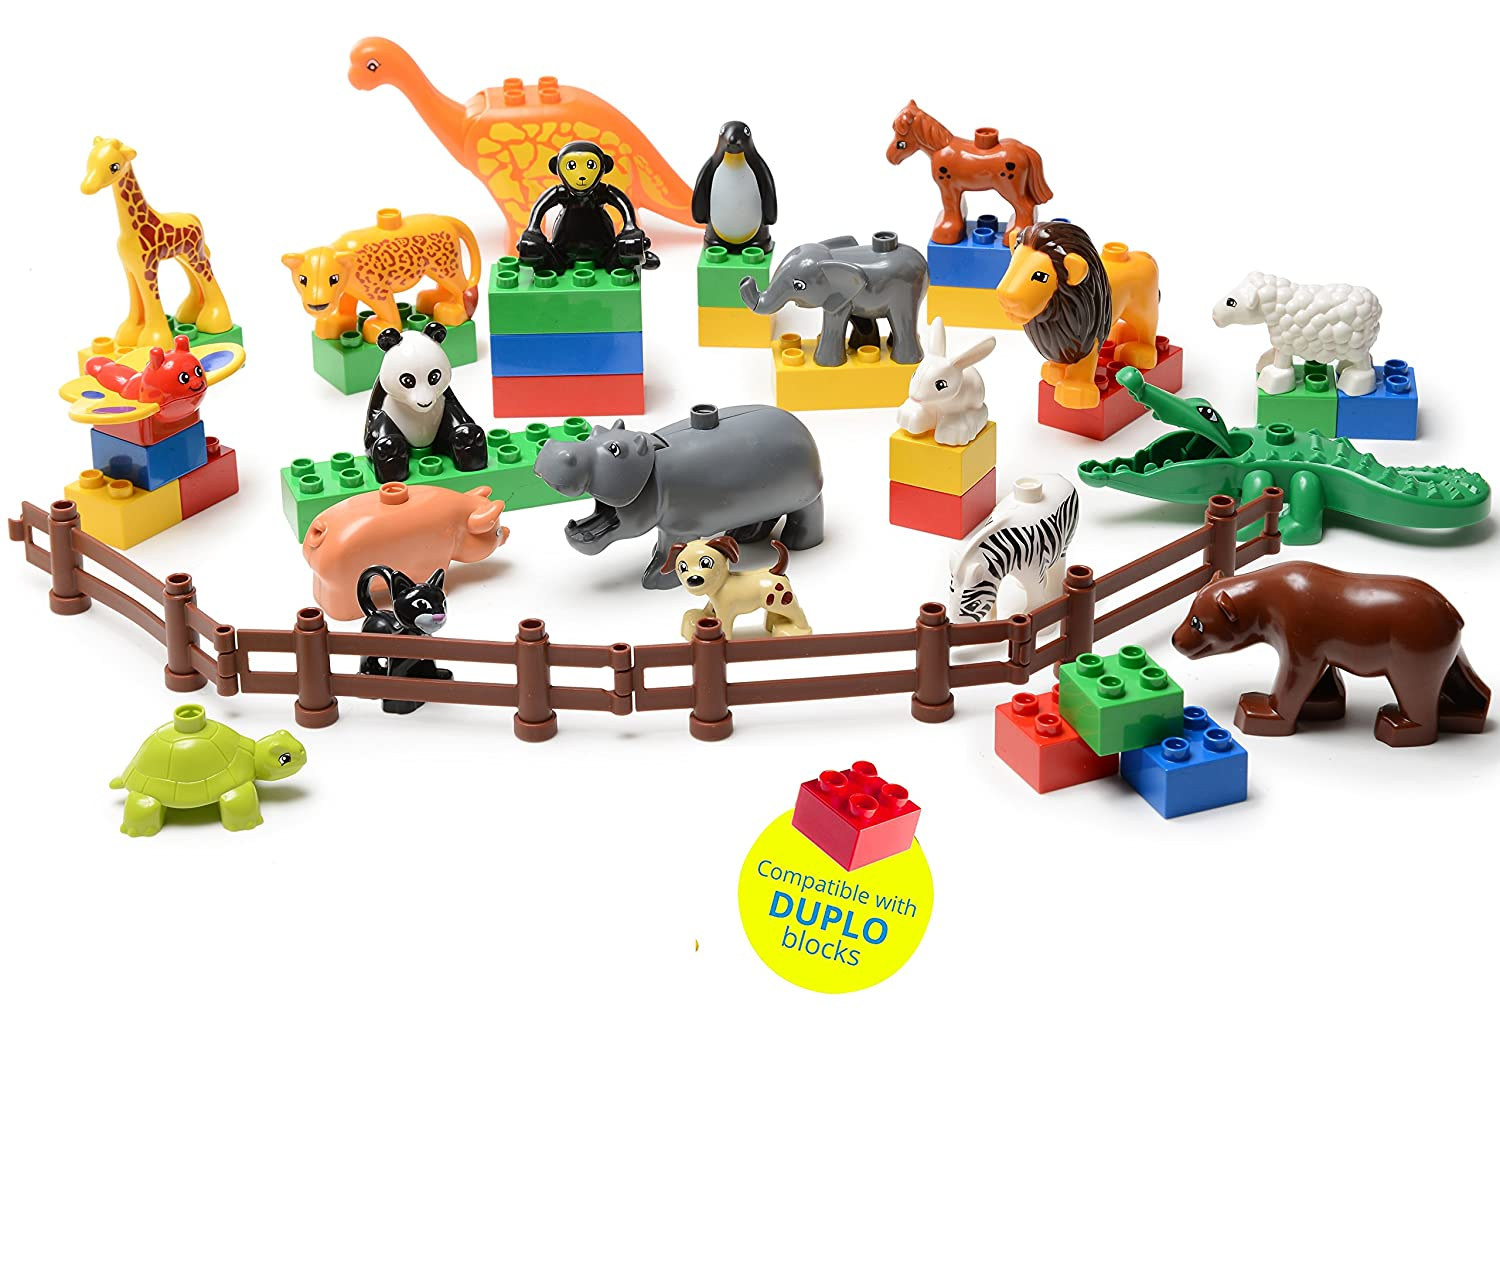 24 PC SET My First Farm and Wild Animals Figures Set (20 Pcs) with 4 Fences Included (Duplo Compatible) Review